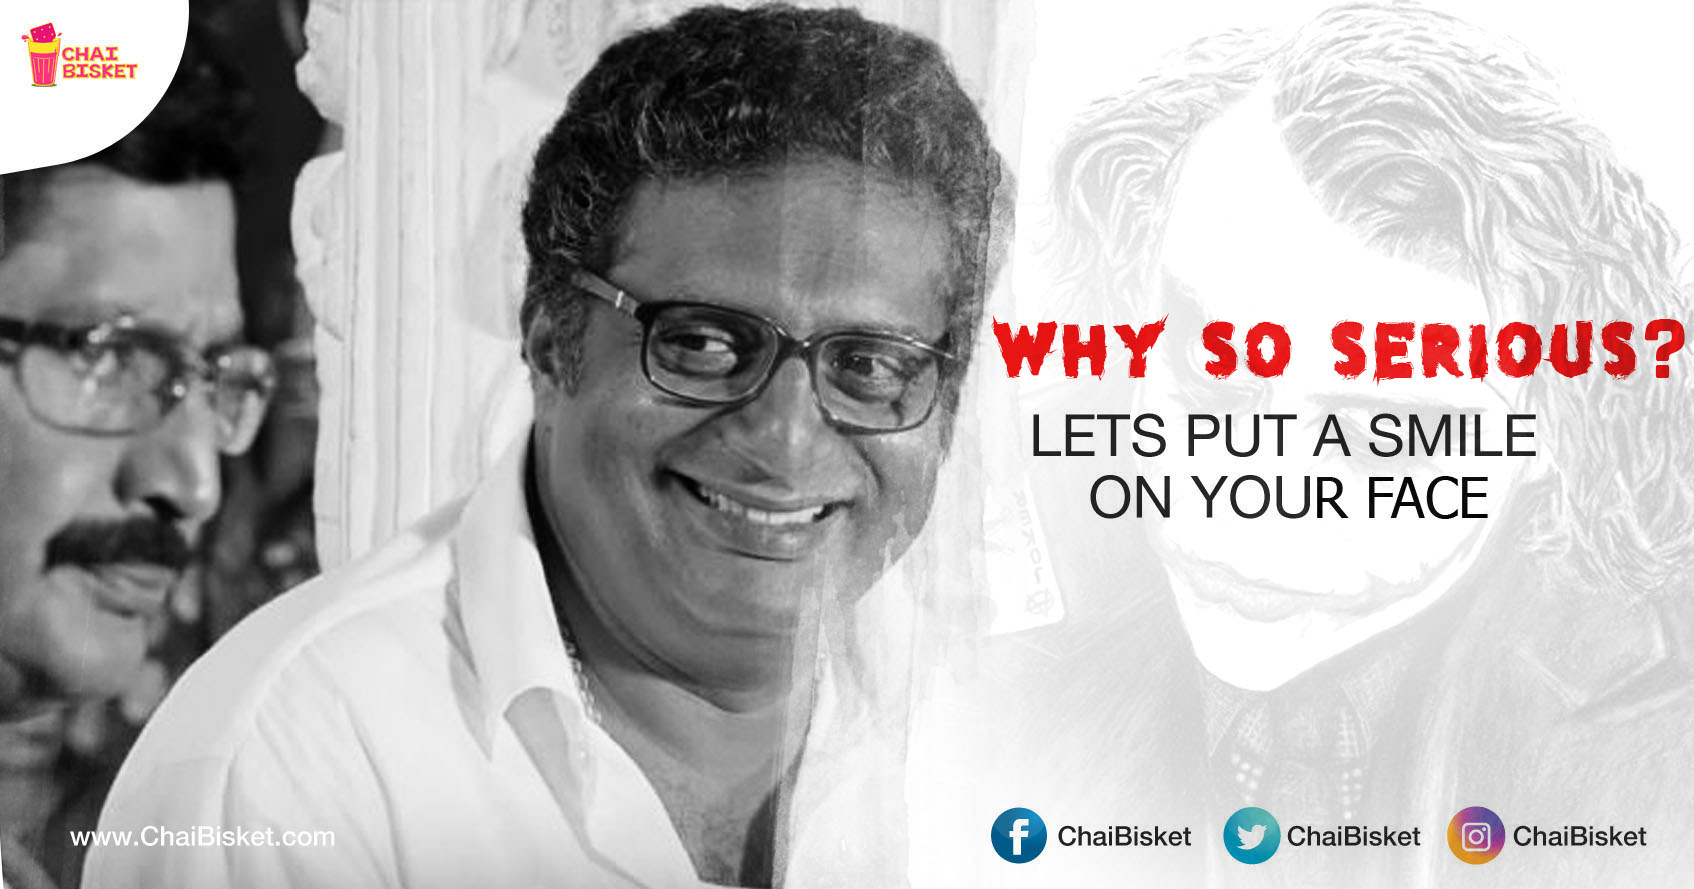 what if famous quotes of the joker were related to our tollywood